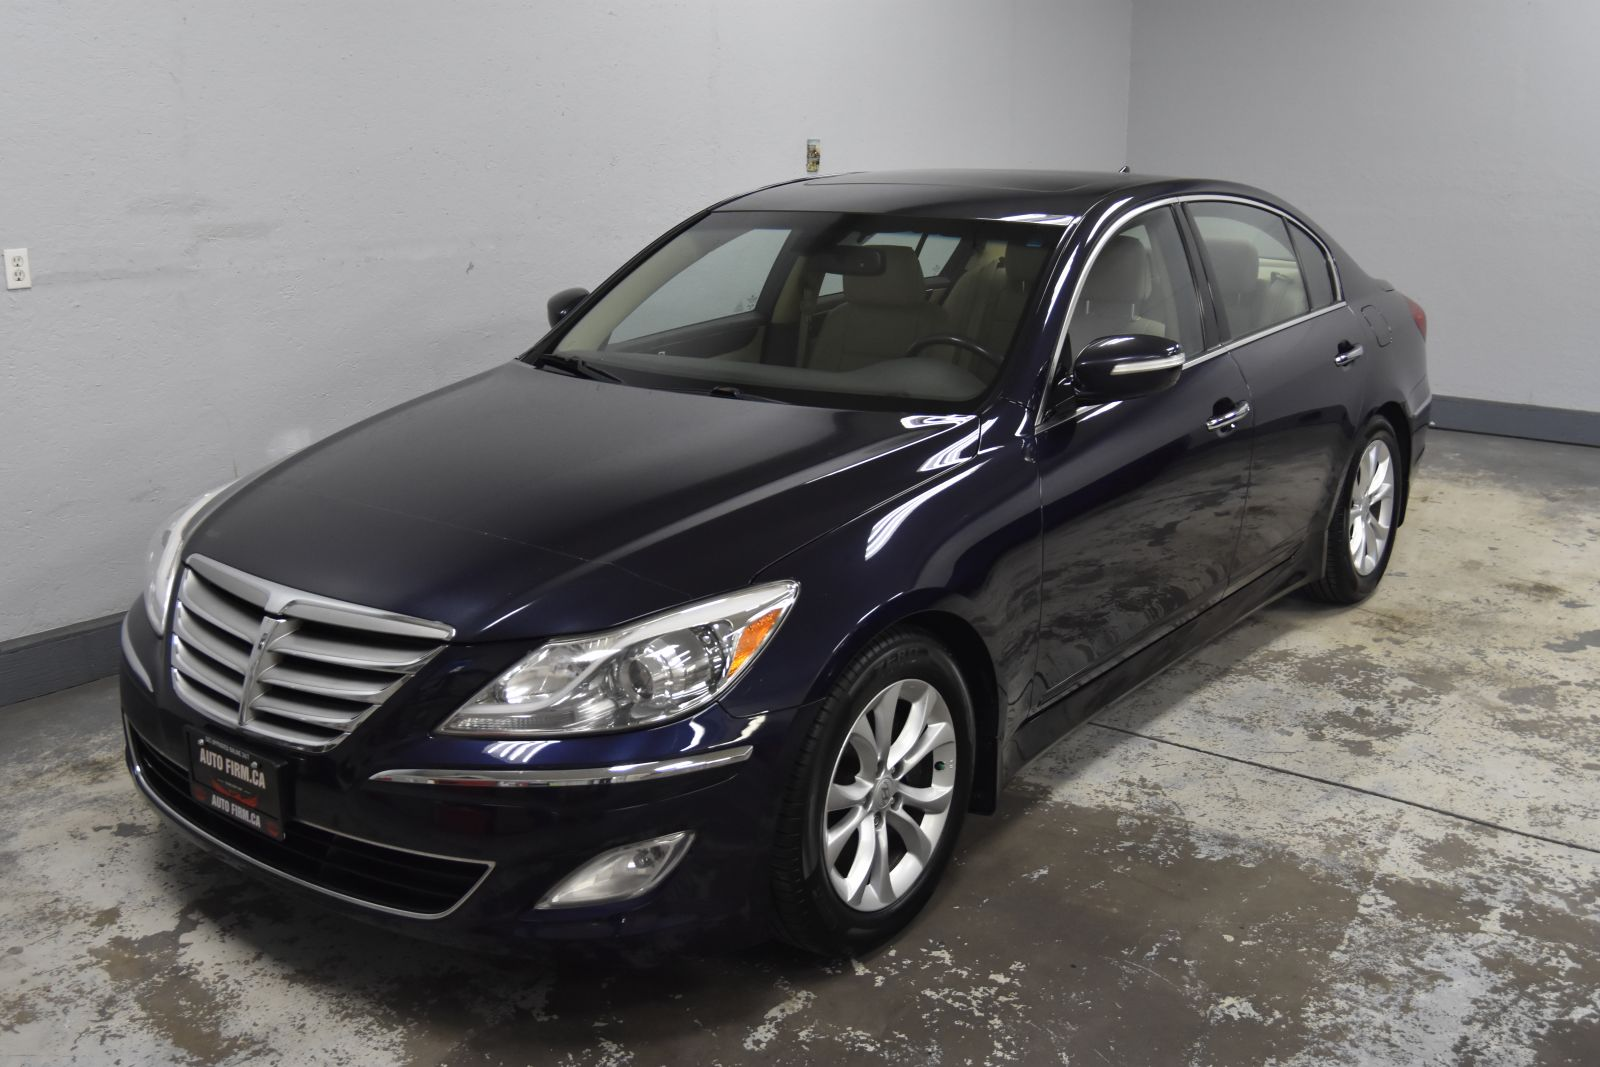 2012 Hyundai Genesis Sedan Main